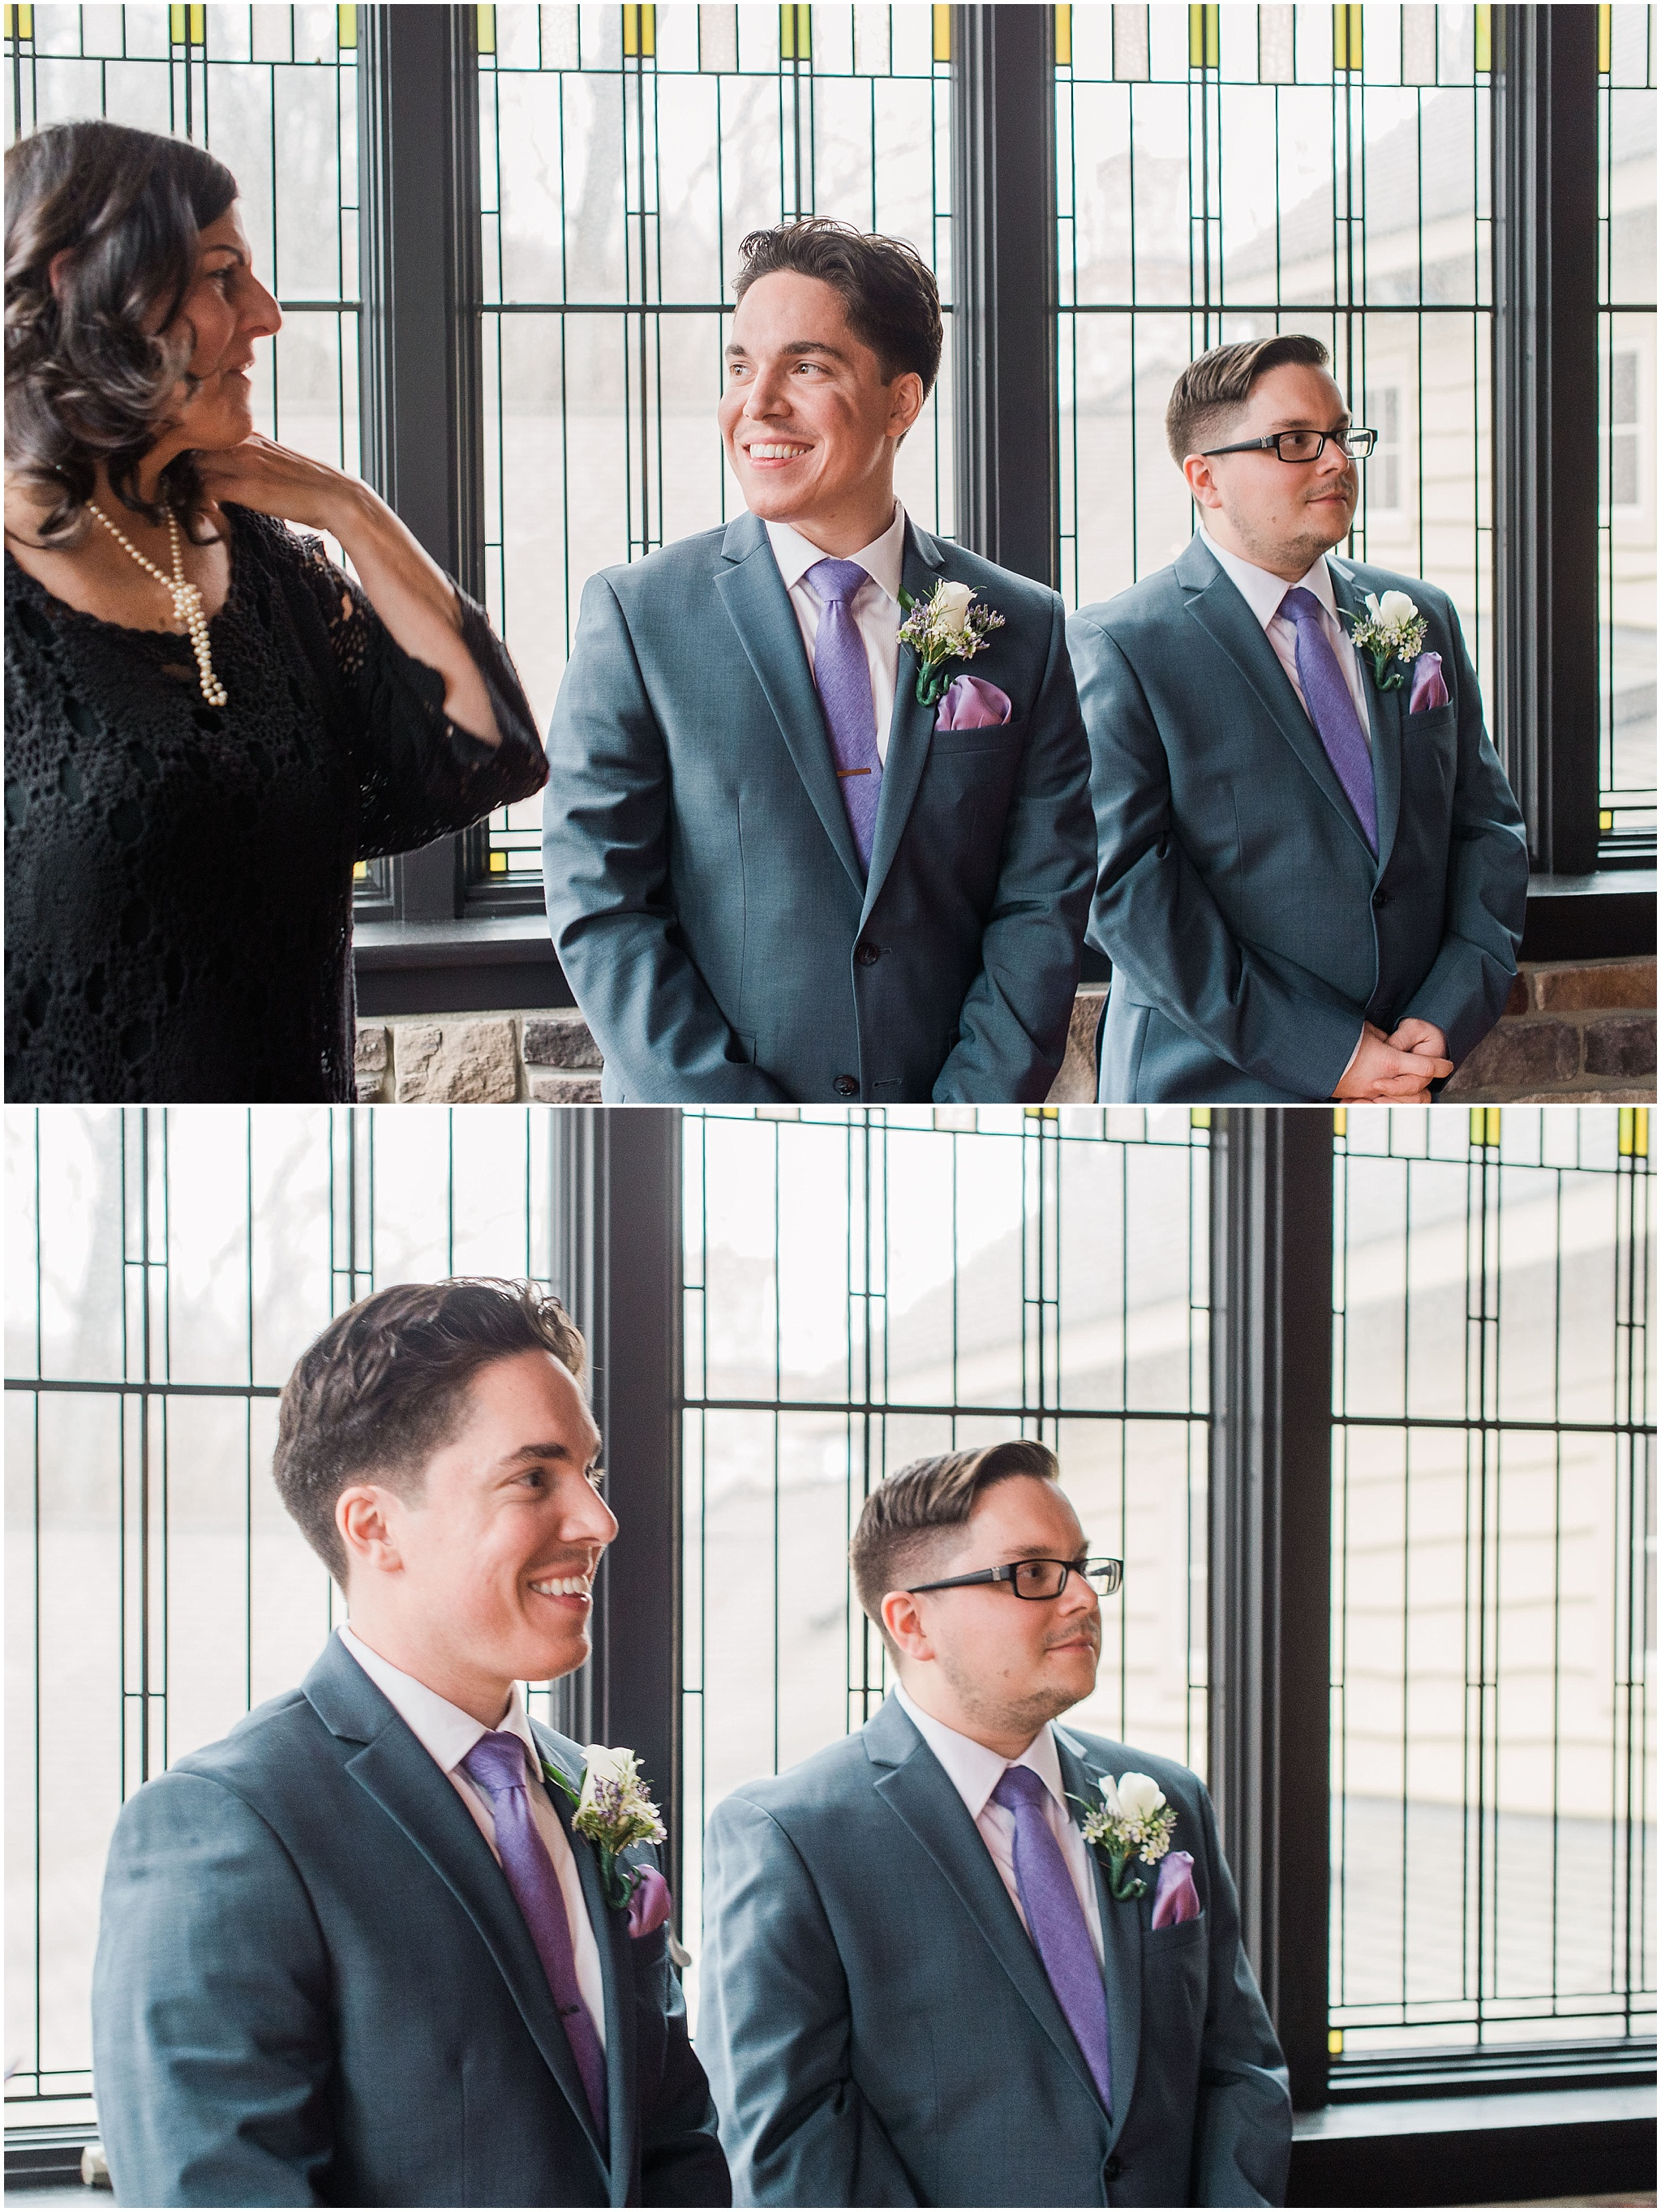 Groom getting ready to see his bride for the first time at their intimate wedding ceremony, elopement